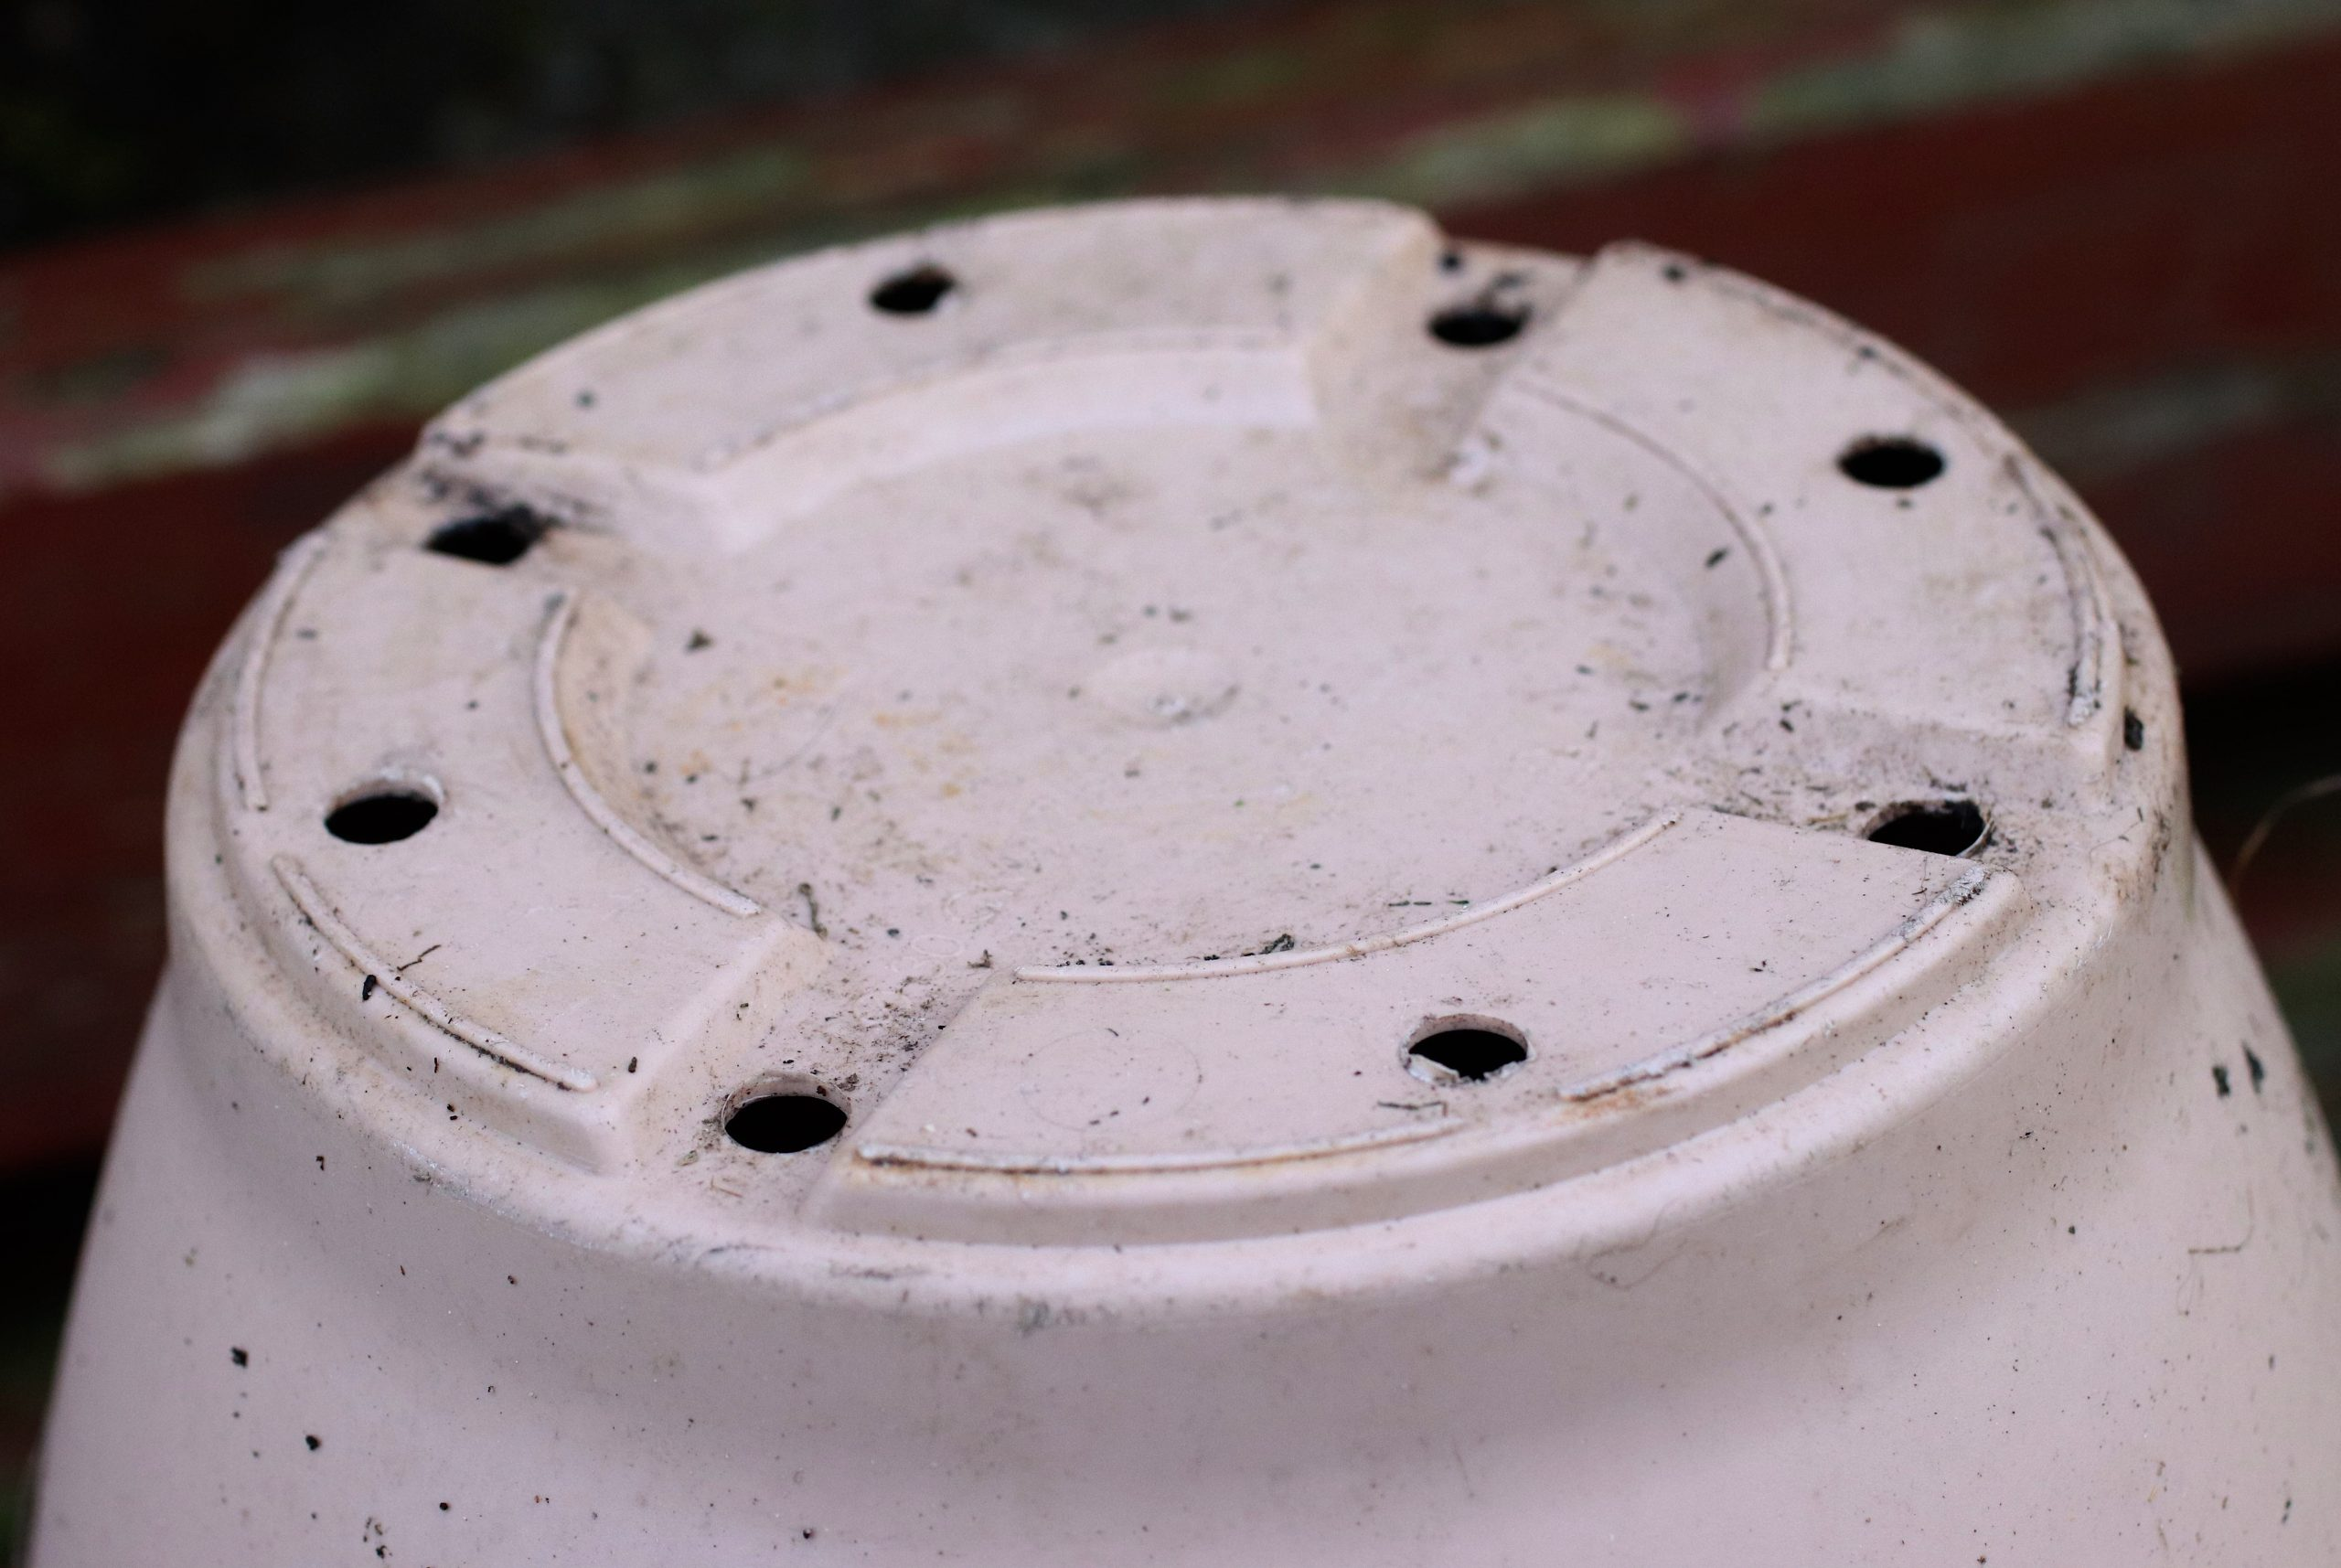 Drainage holes in pot